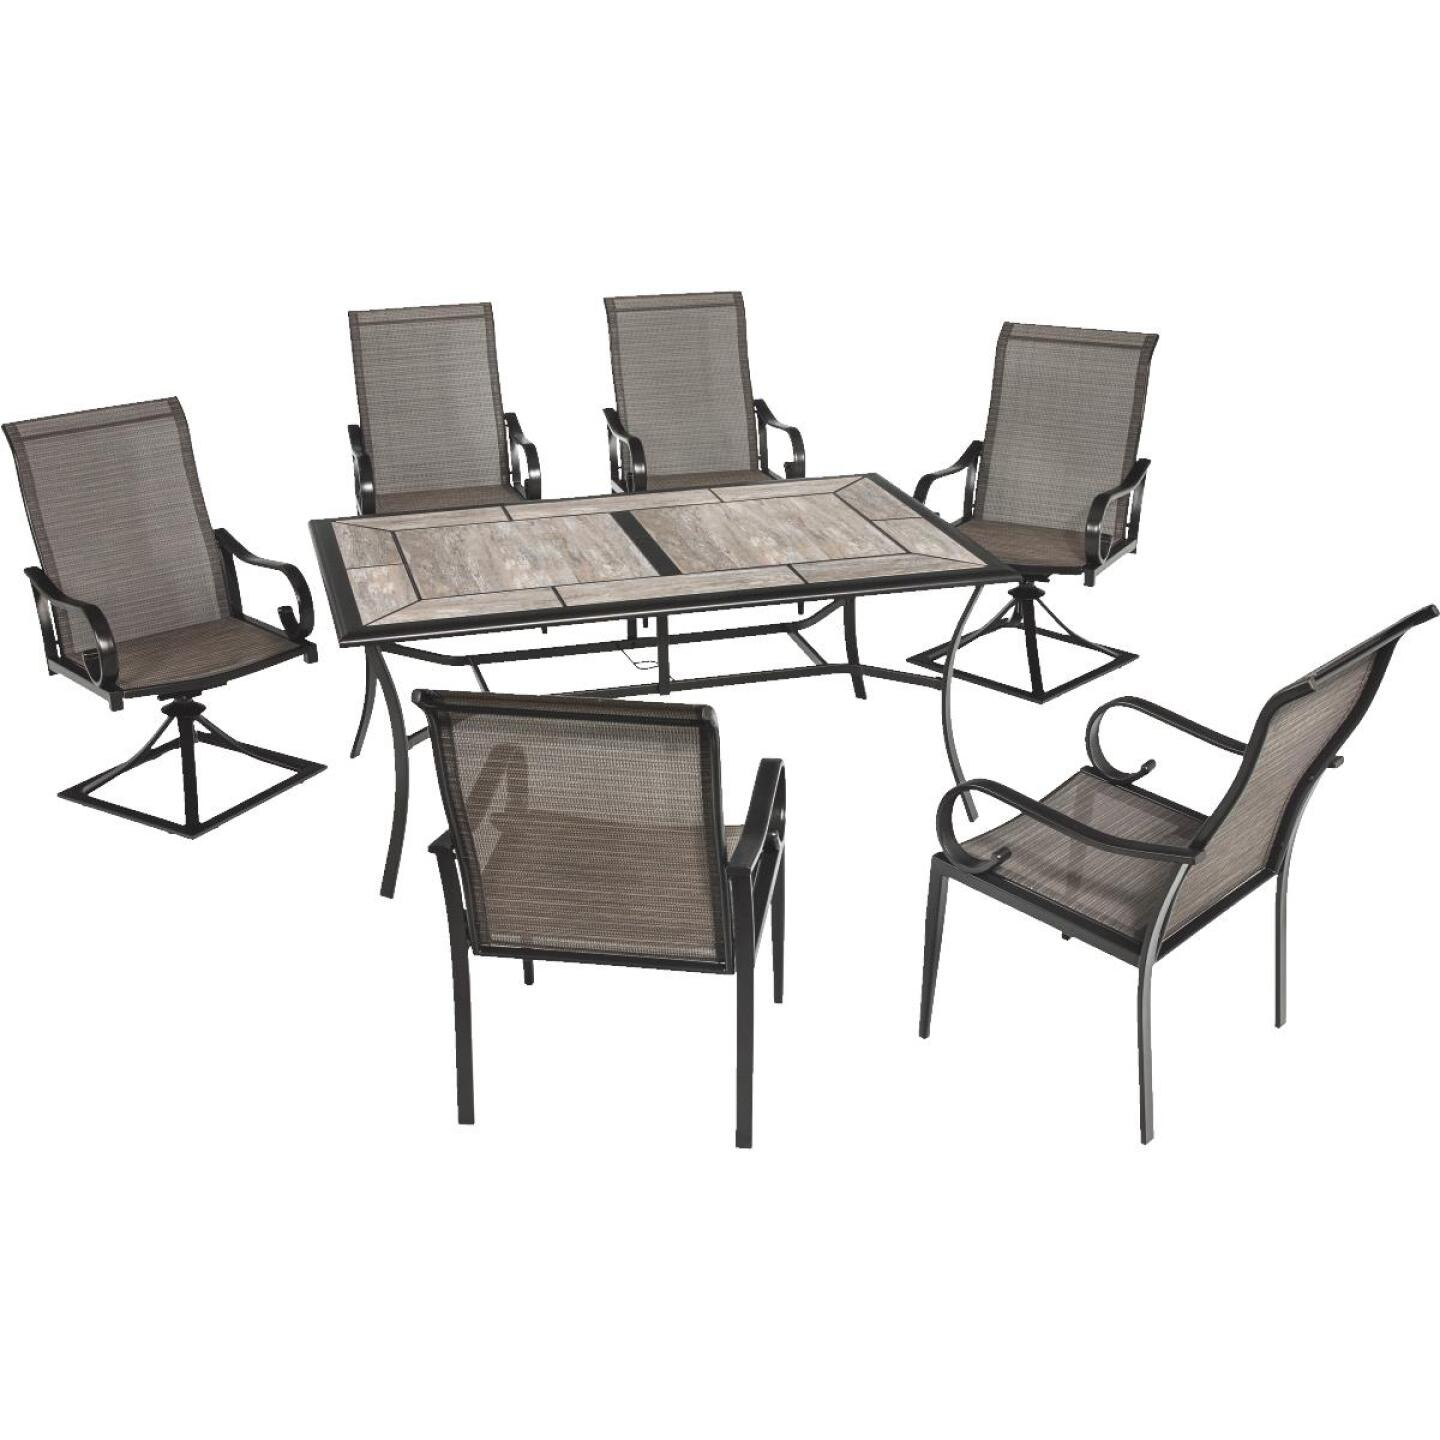 Outdoor Expressions Berkshire 7-Piece Dining Set Image 80